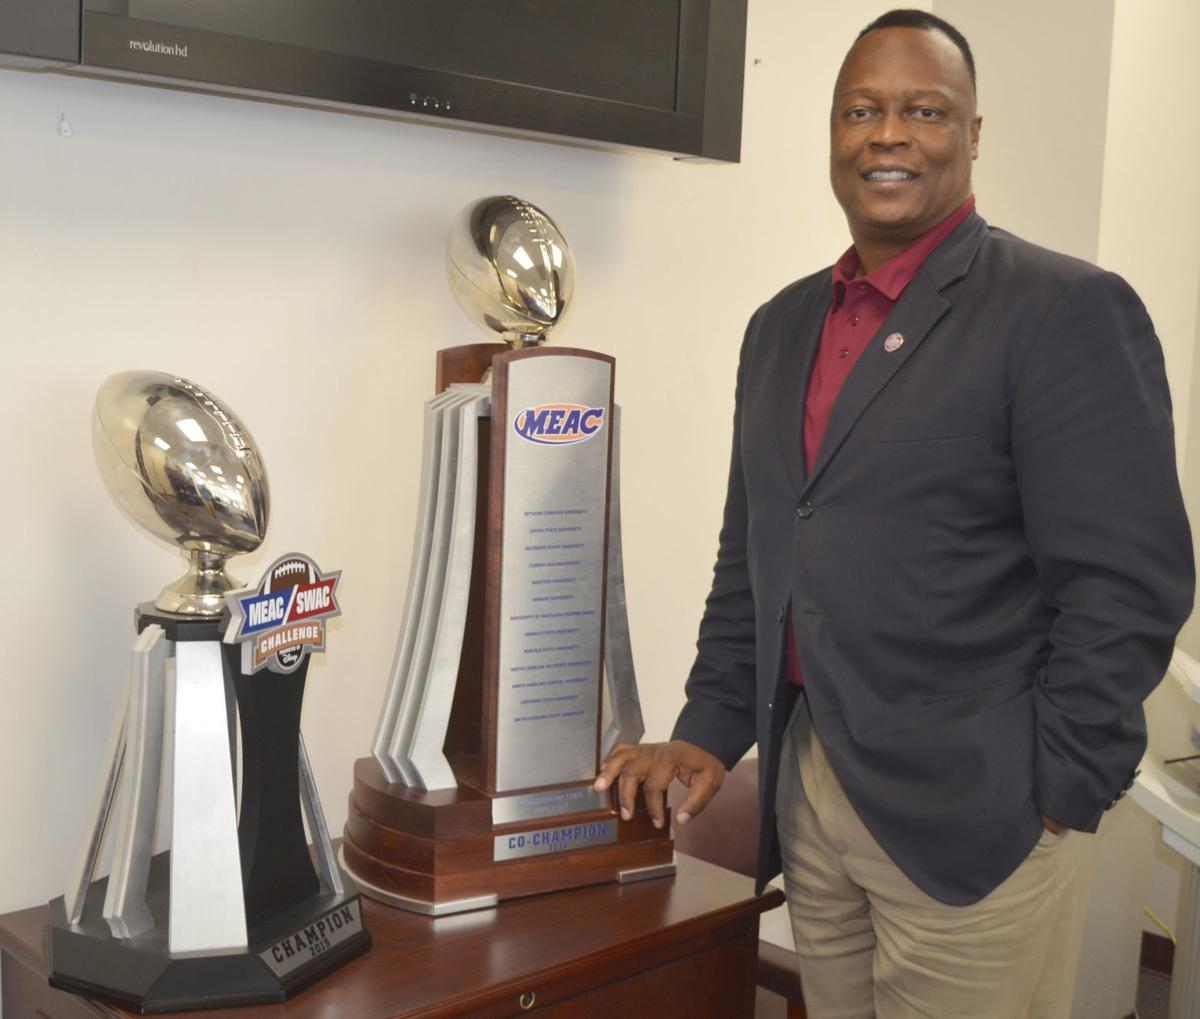 Stacy Danley with trophies